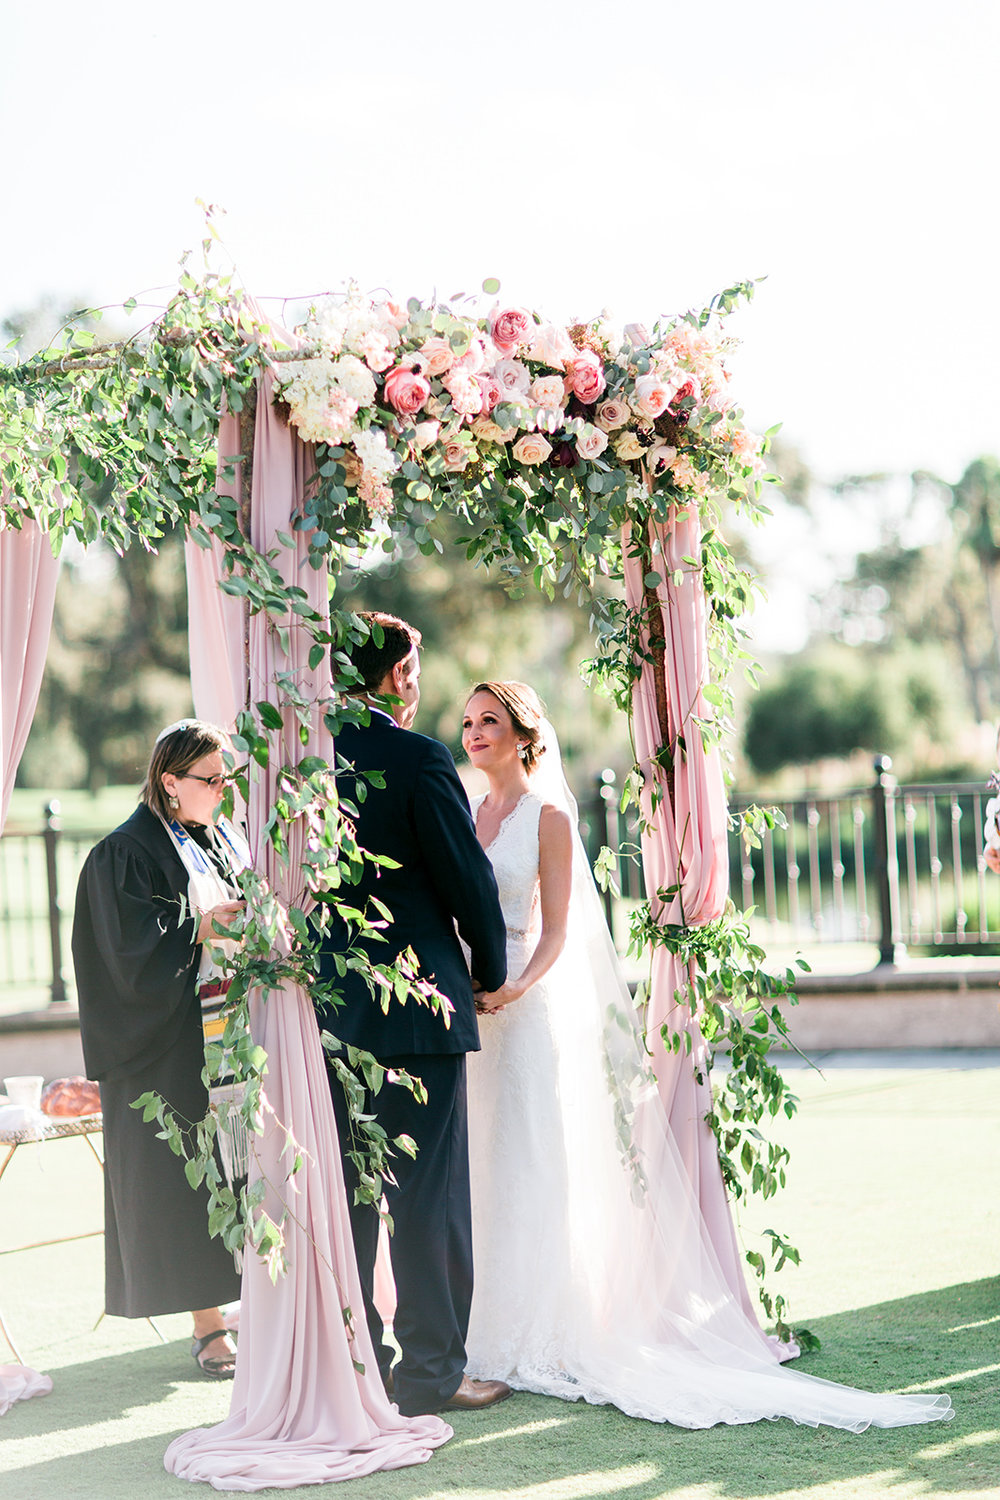 TPC Sawgrass Ceremony Jewish wedding Ponte Vedra Beach Blue Ribbon Wedding Planner Shea Hopely Flowers Debra Eby Photography